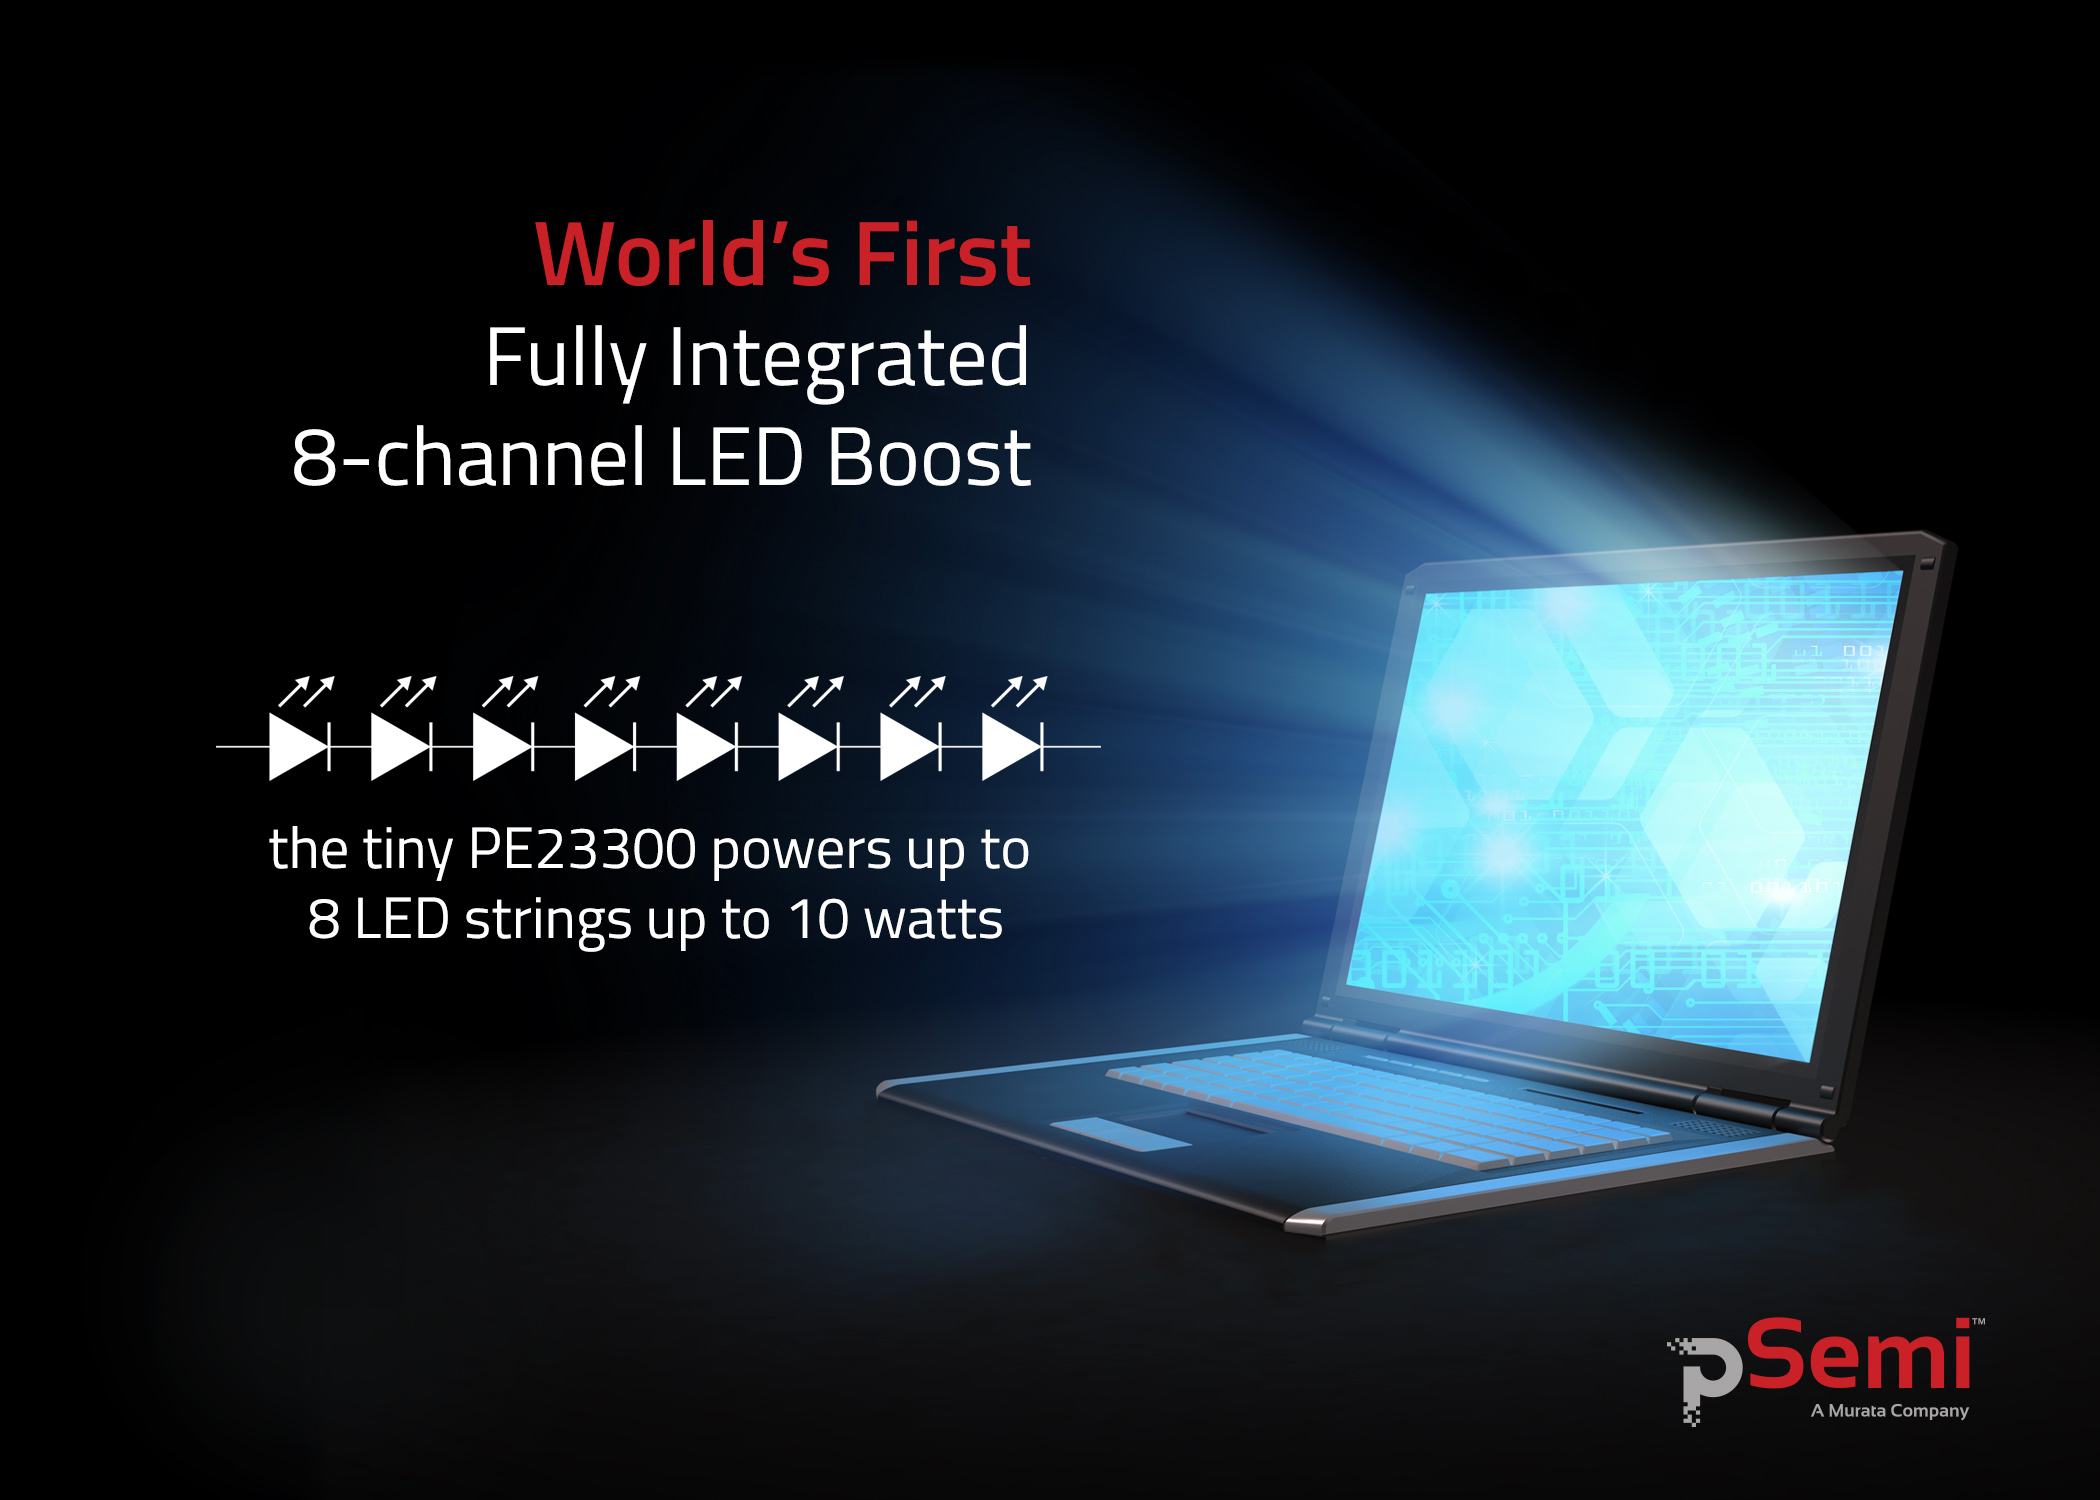 PE23300 Fully Integrated 8-channel LED Boost